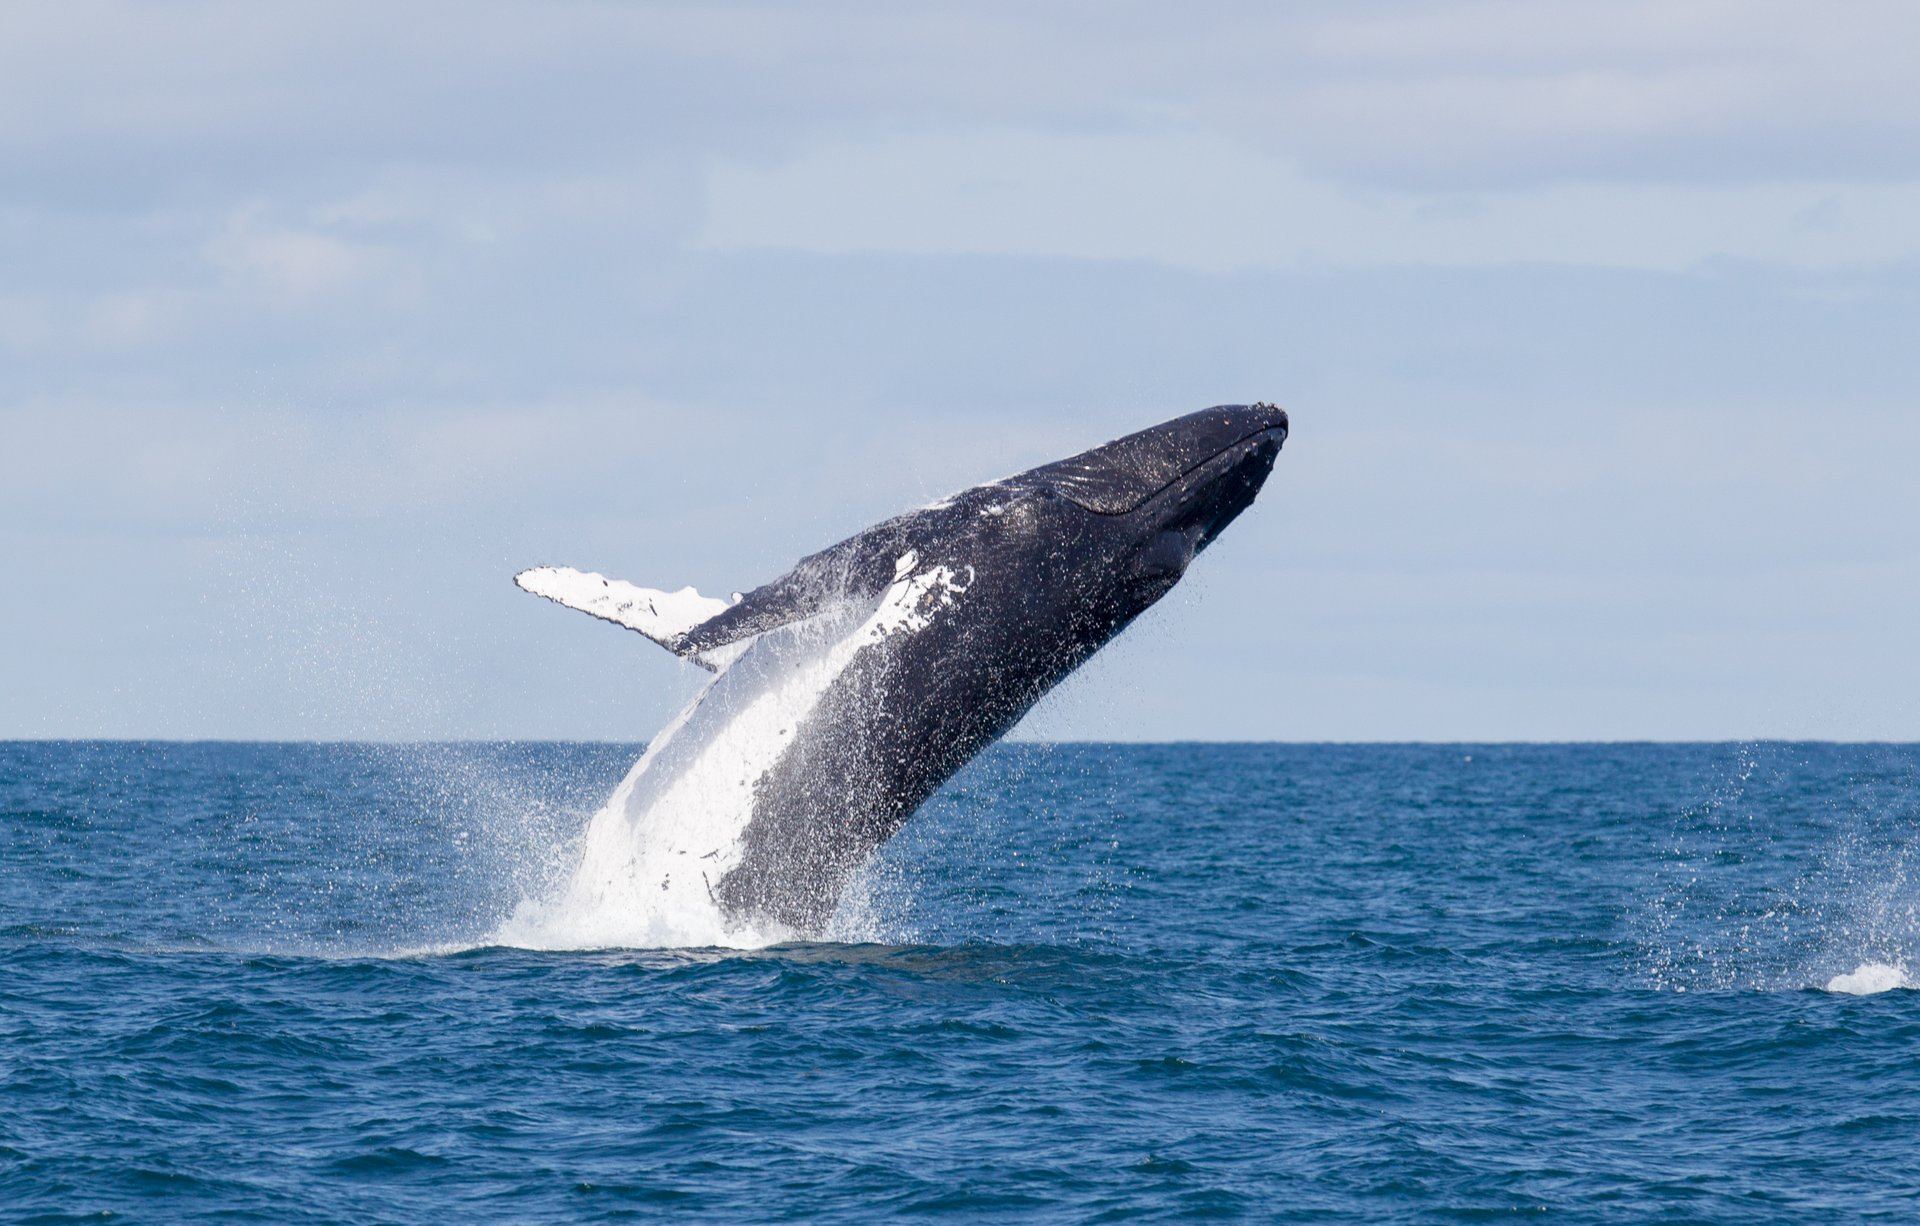 Whale Watching in Western Australia 2020 - Best Time